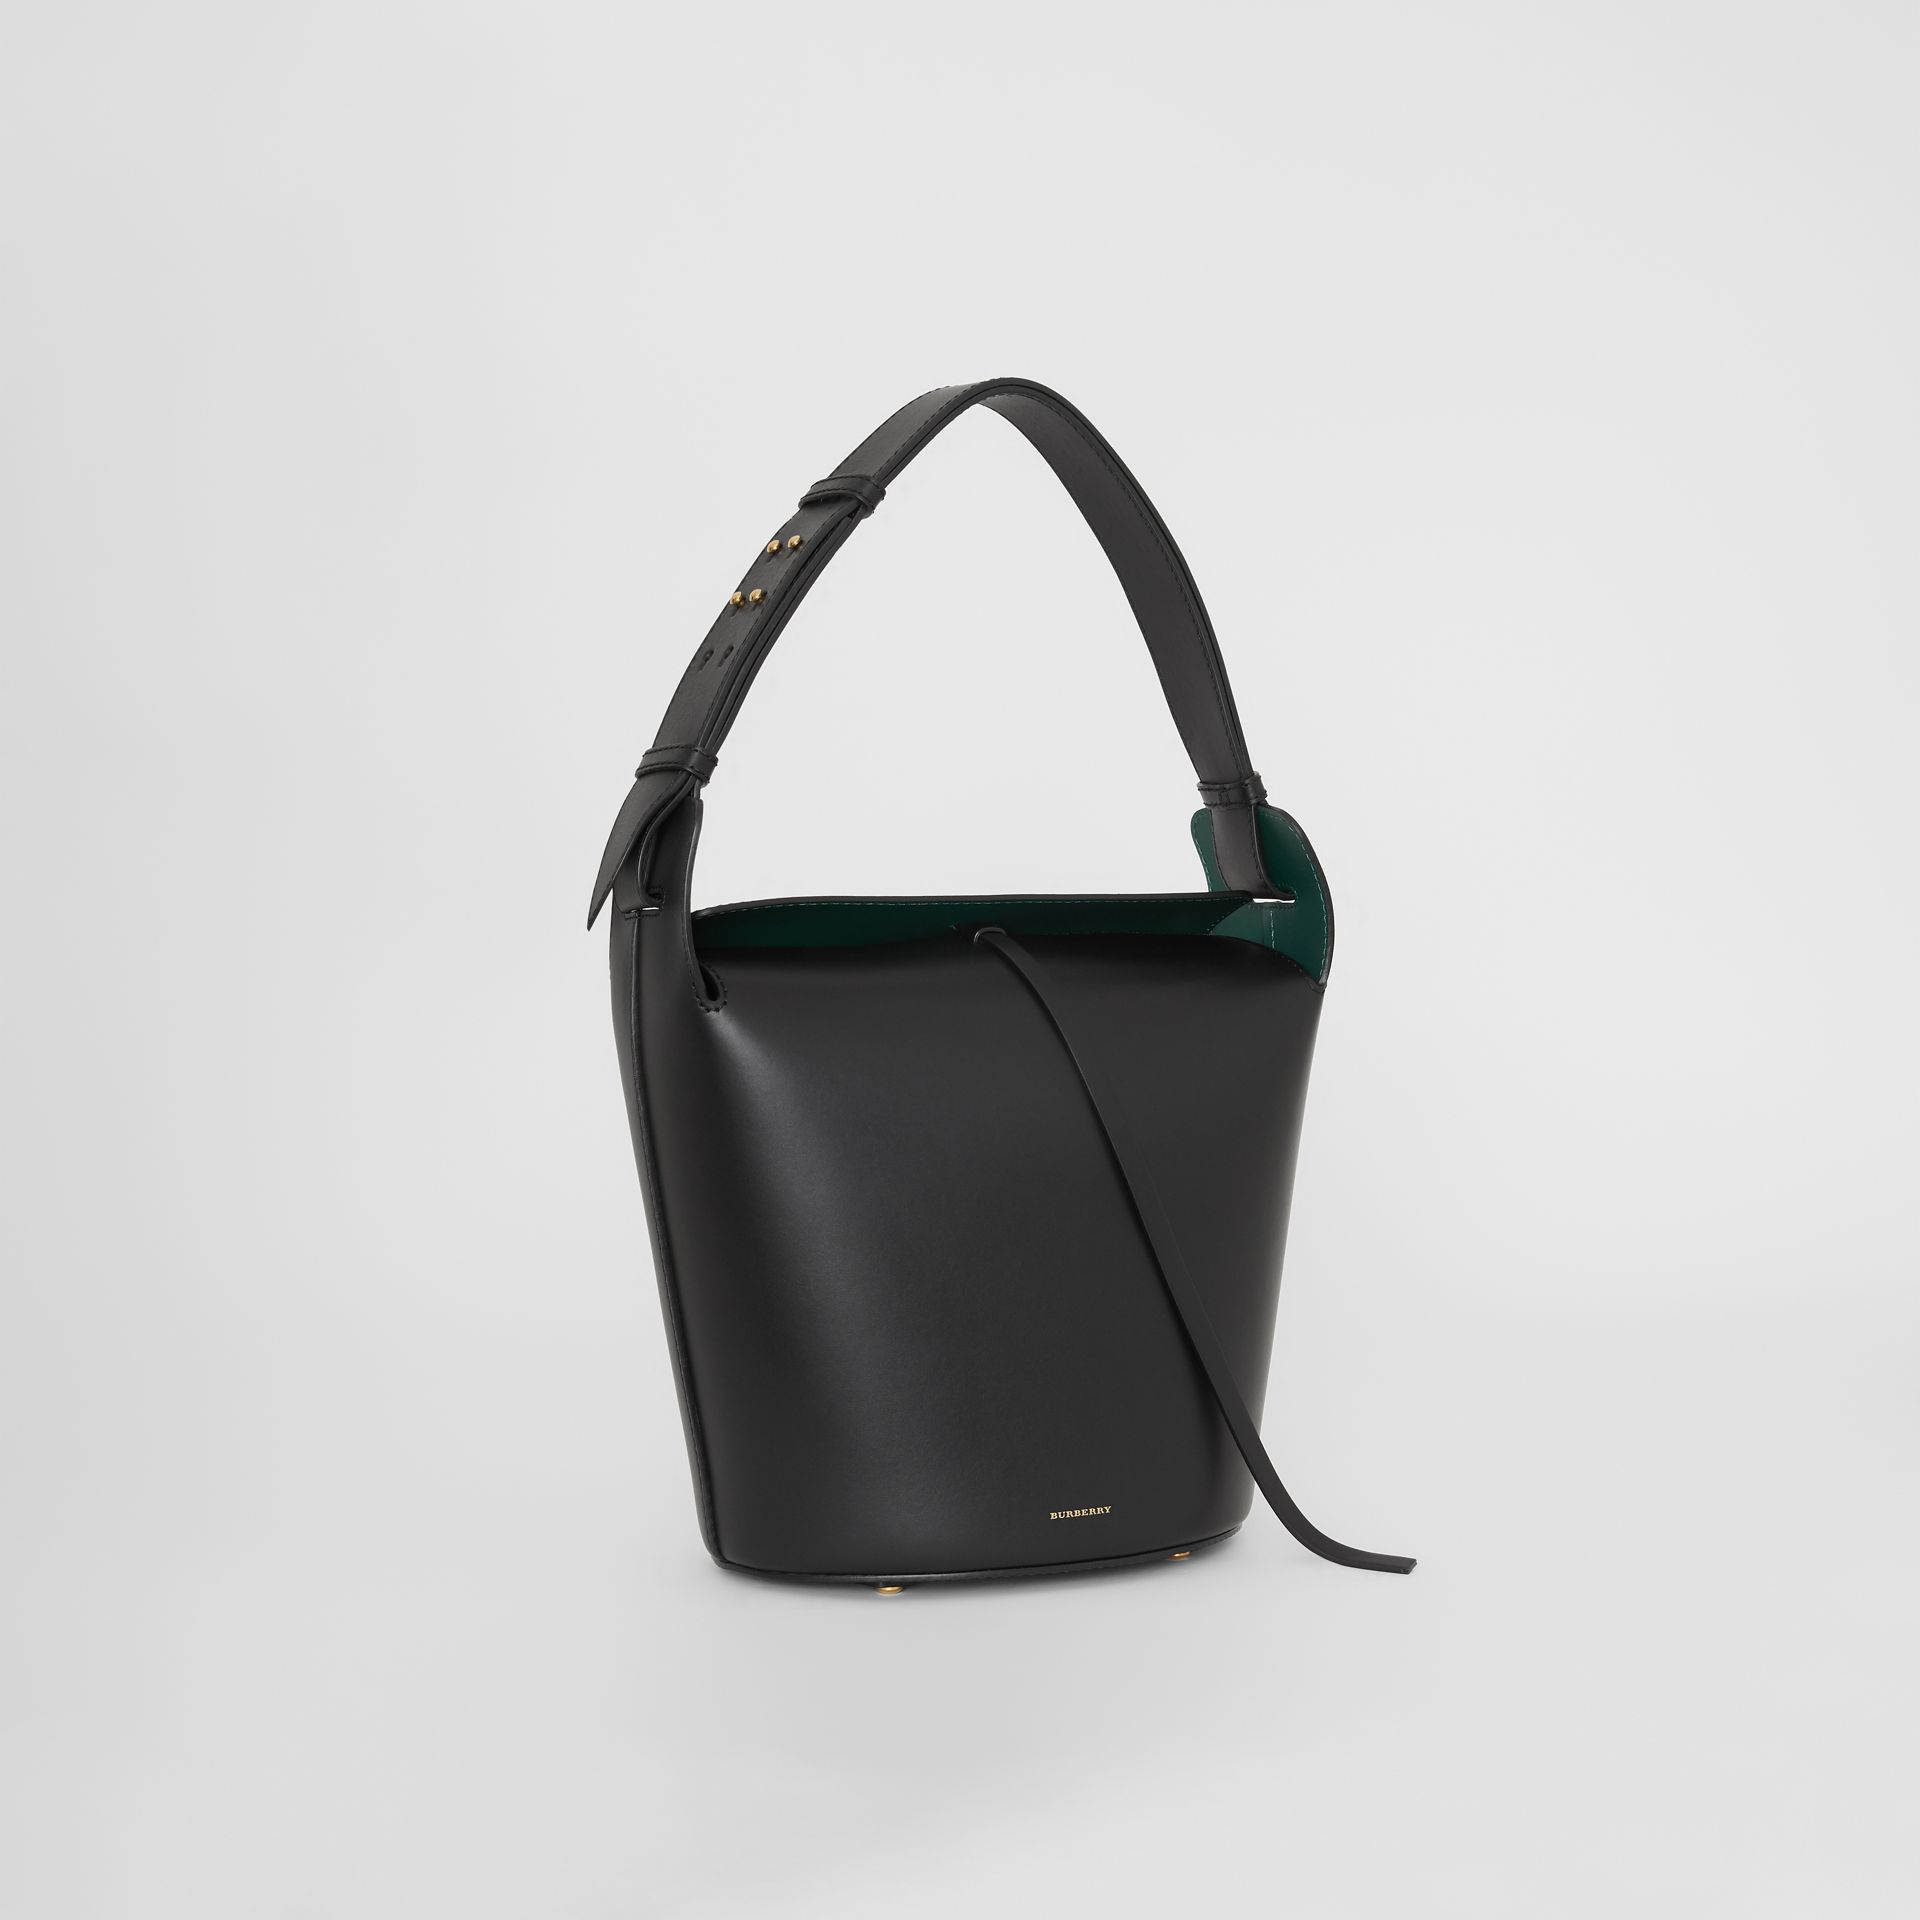 Borsa The Bucket media in pelle (Nero) - Donna | Burberry - immagine della galleria 6